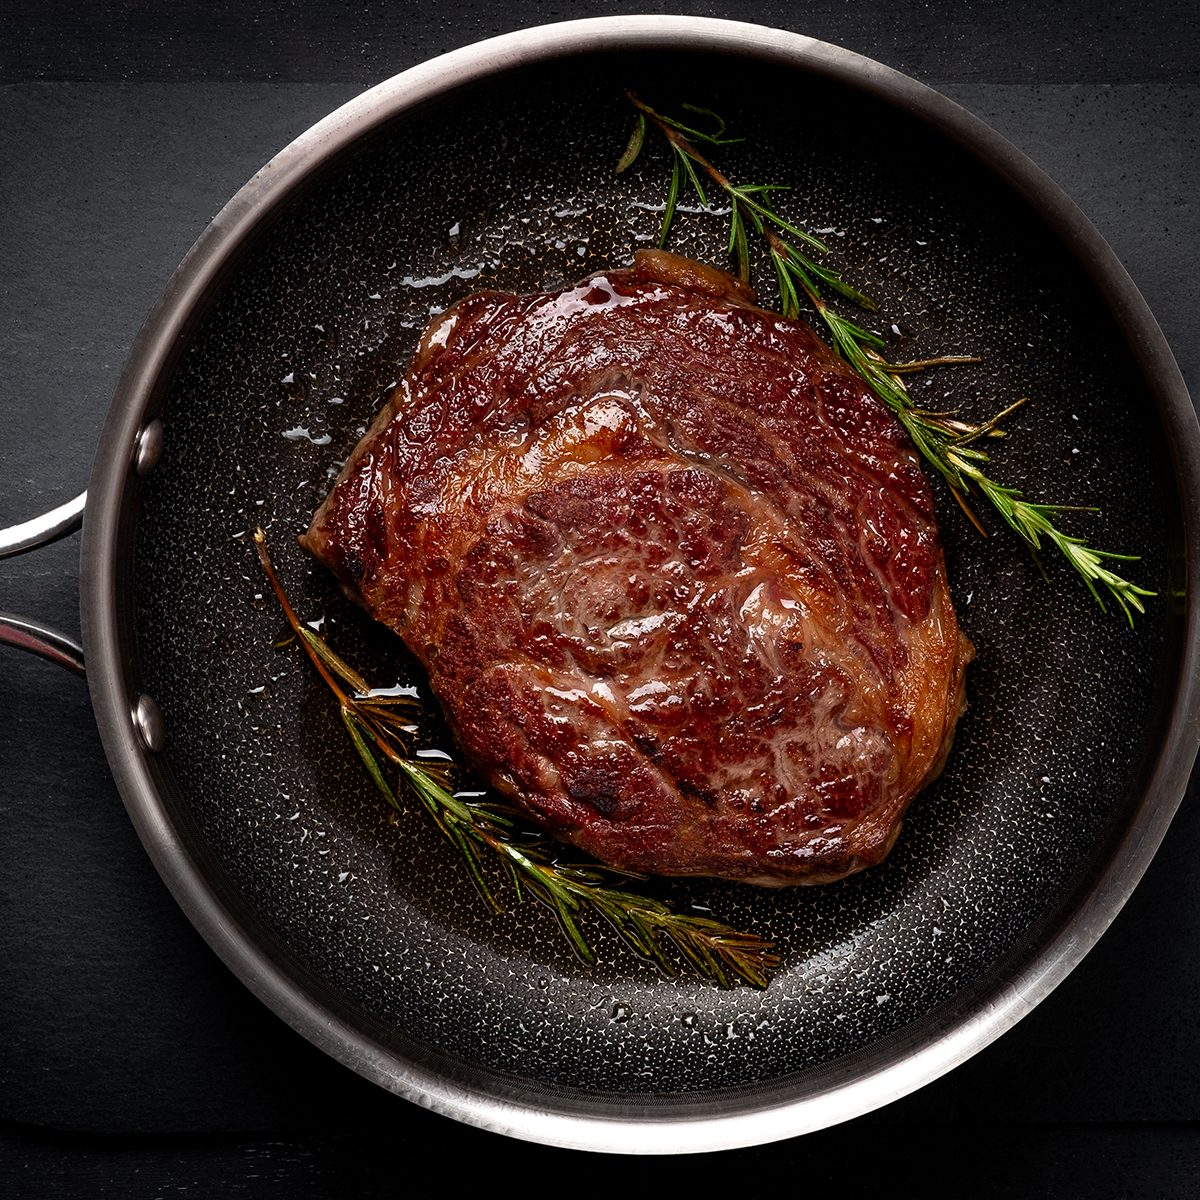 Grilled premium rib eye beef steak in the pan, cooking steak in the kitchen on a dark background